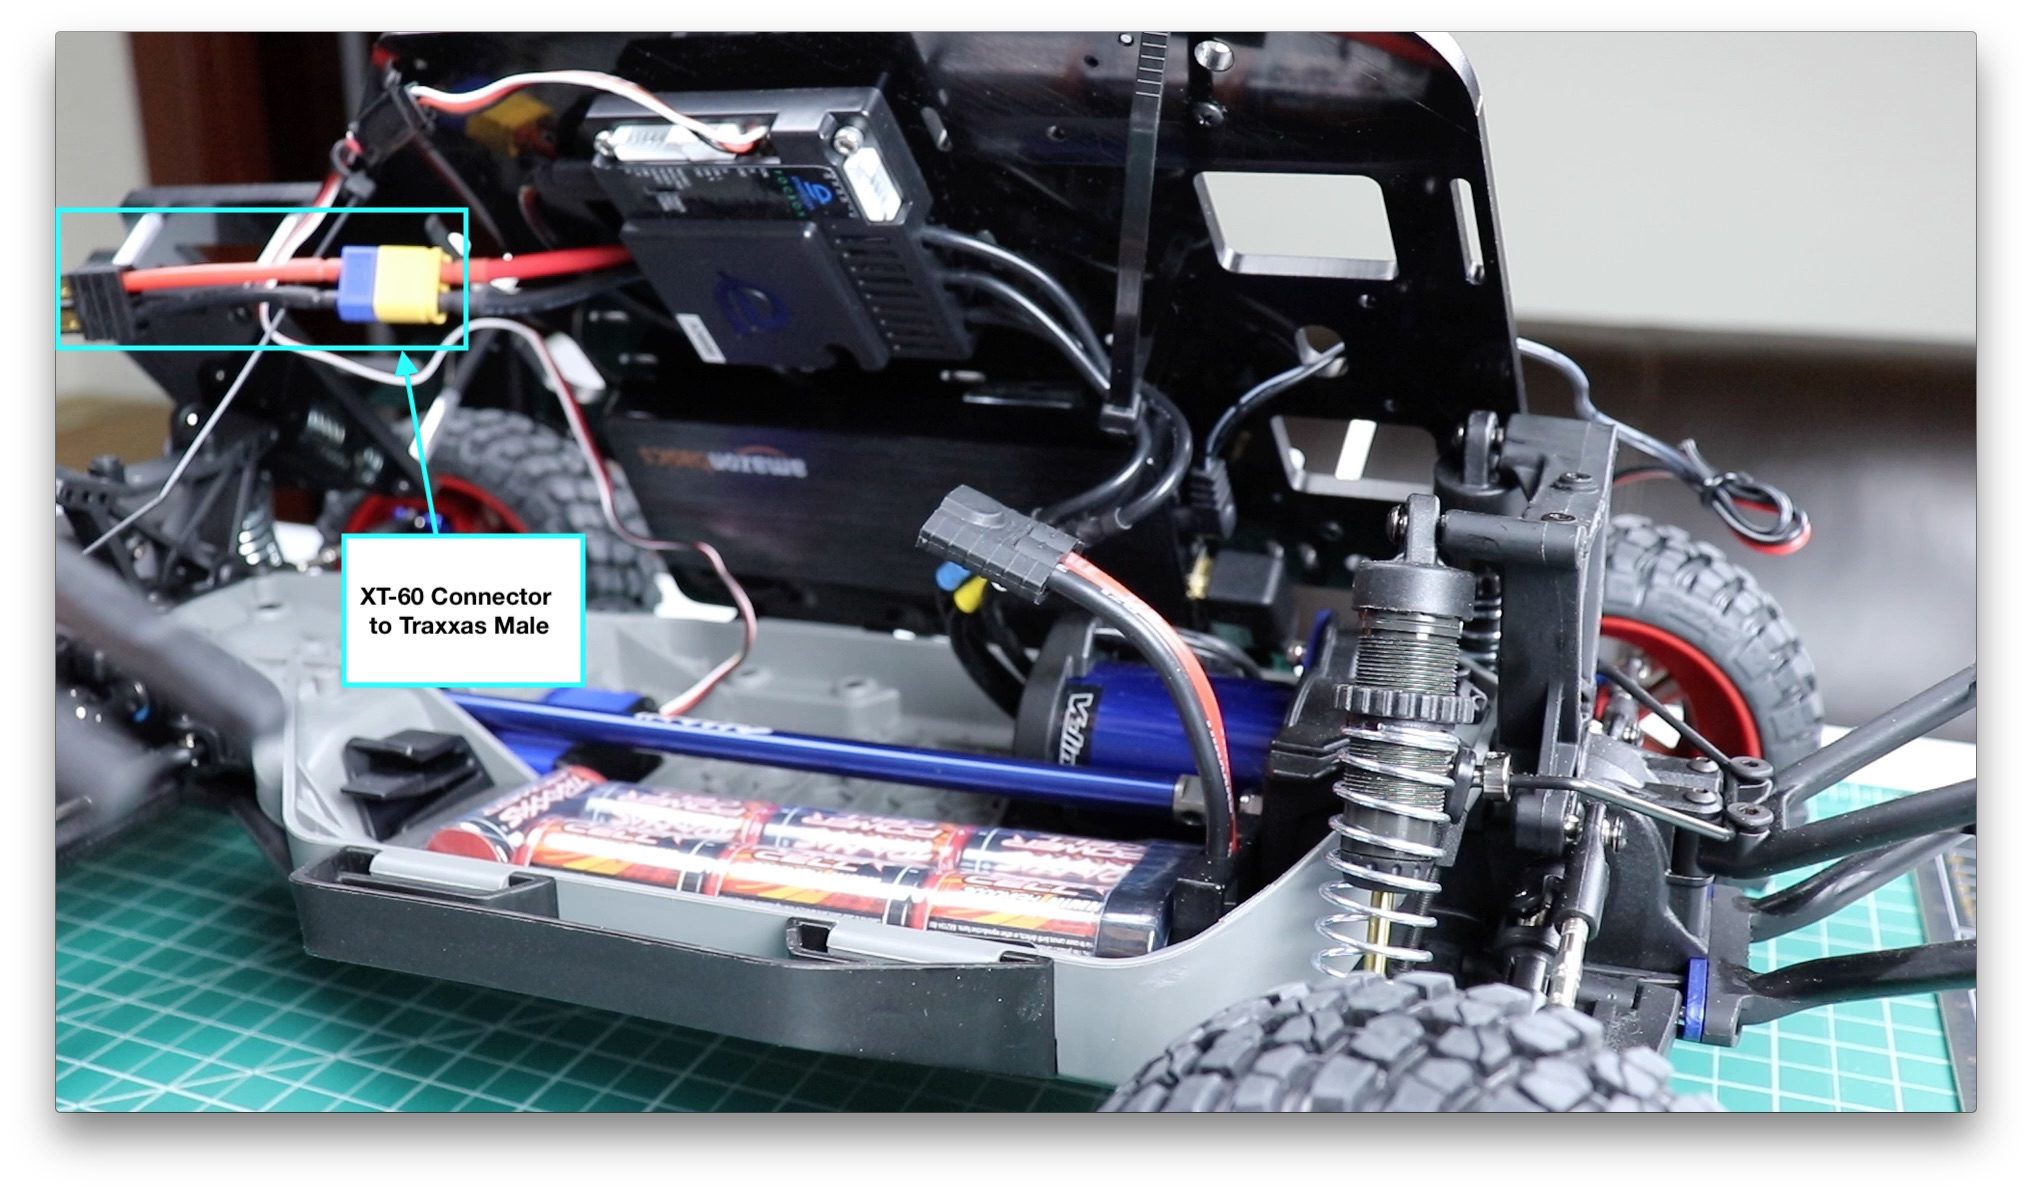 Battery installed in chassis